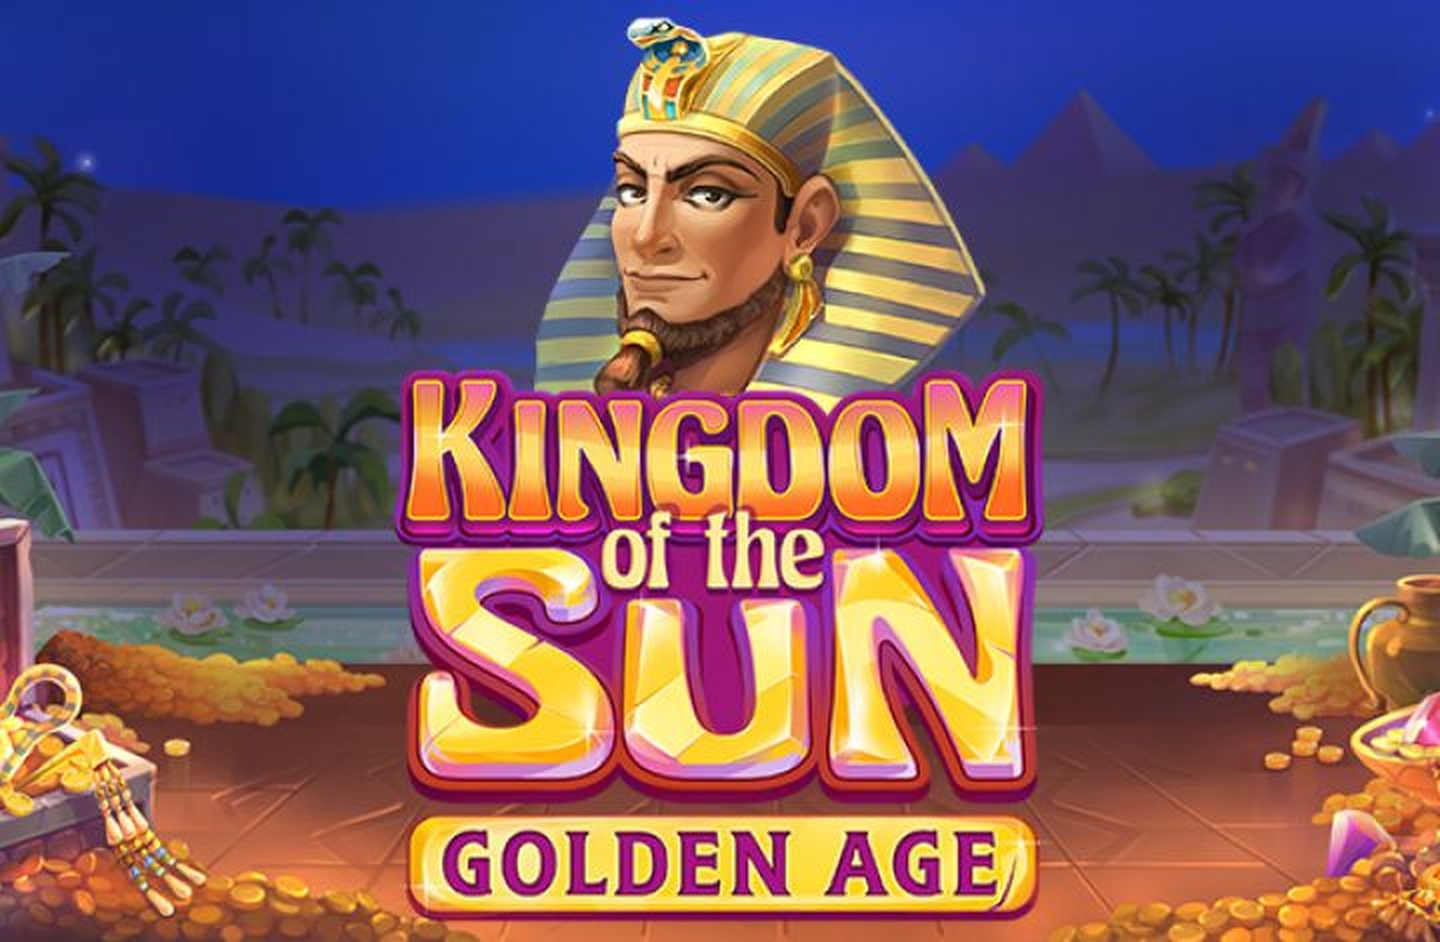 The Kingdom of the Sun: Golden Age Online Slot Demo Game by Playson